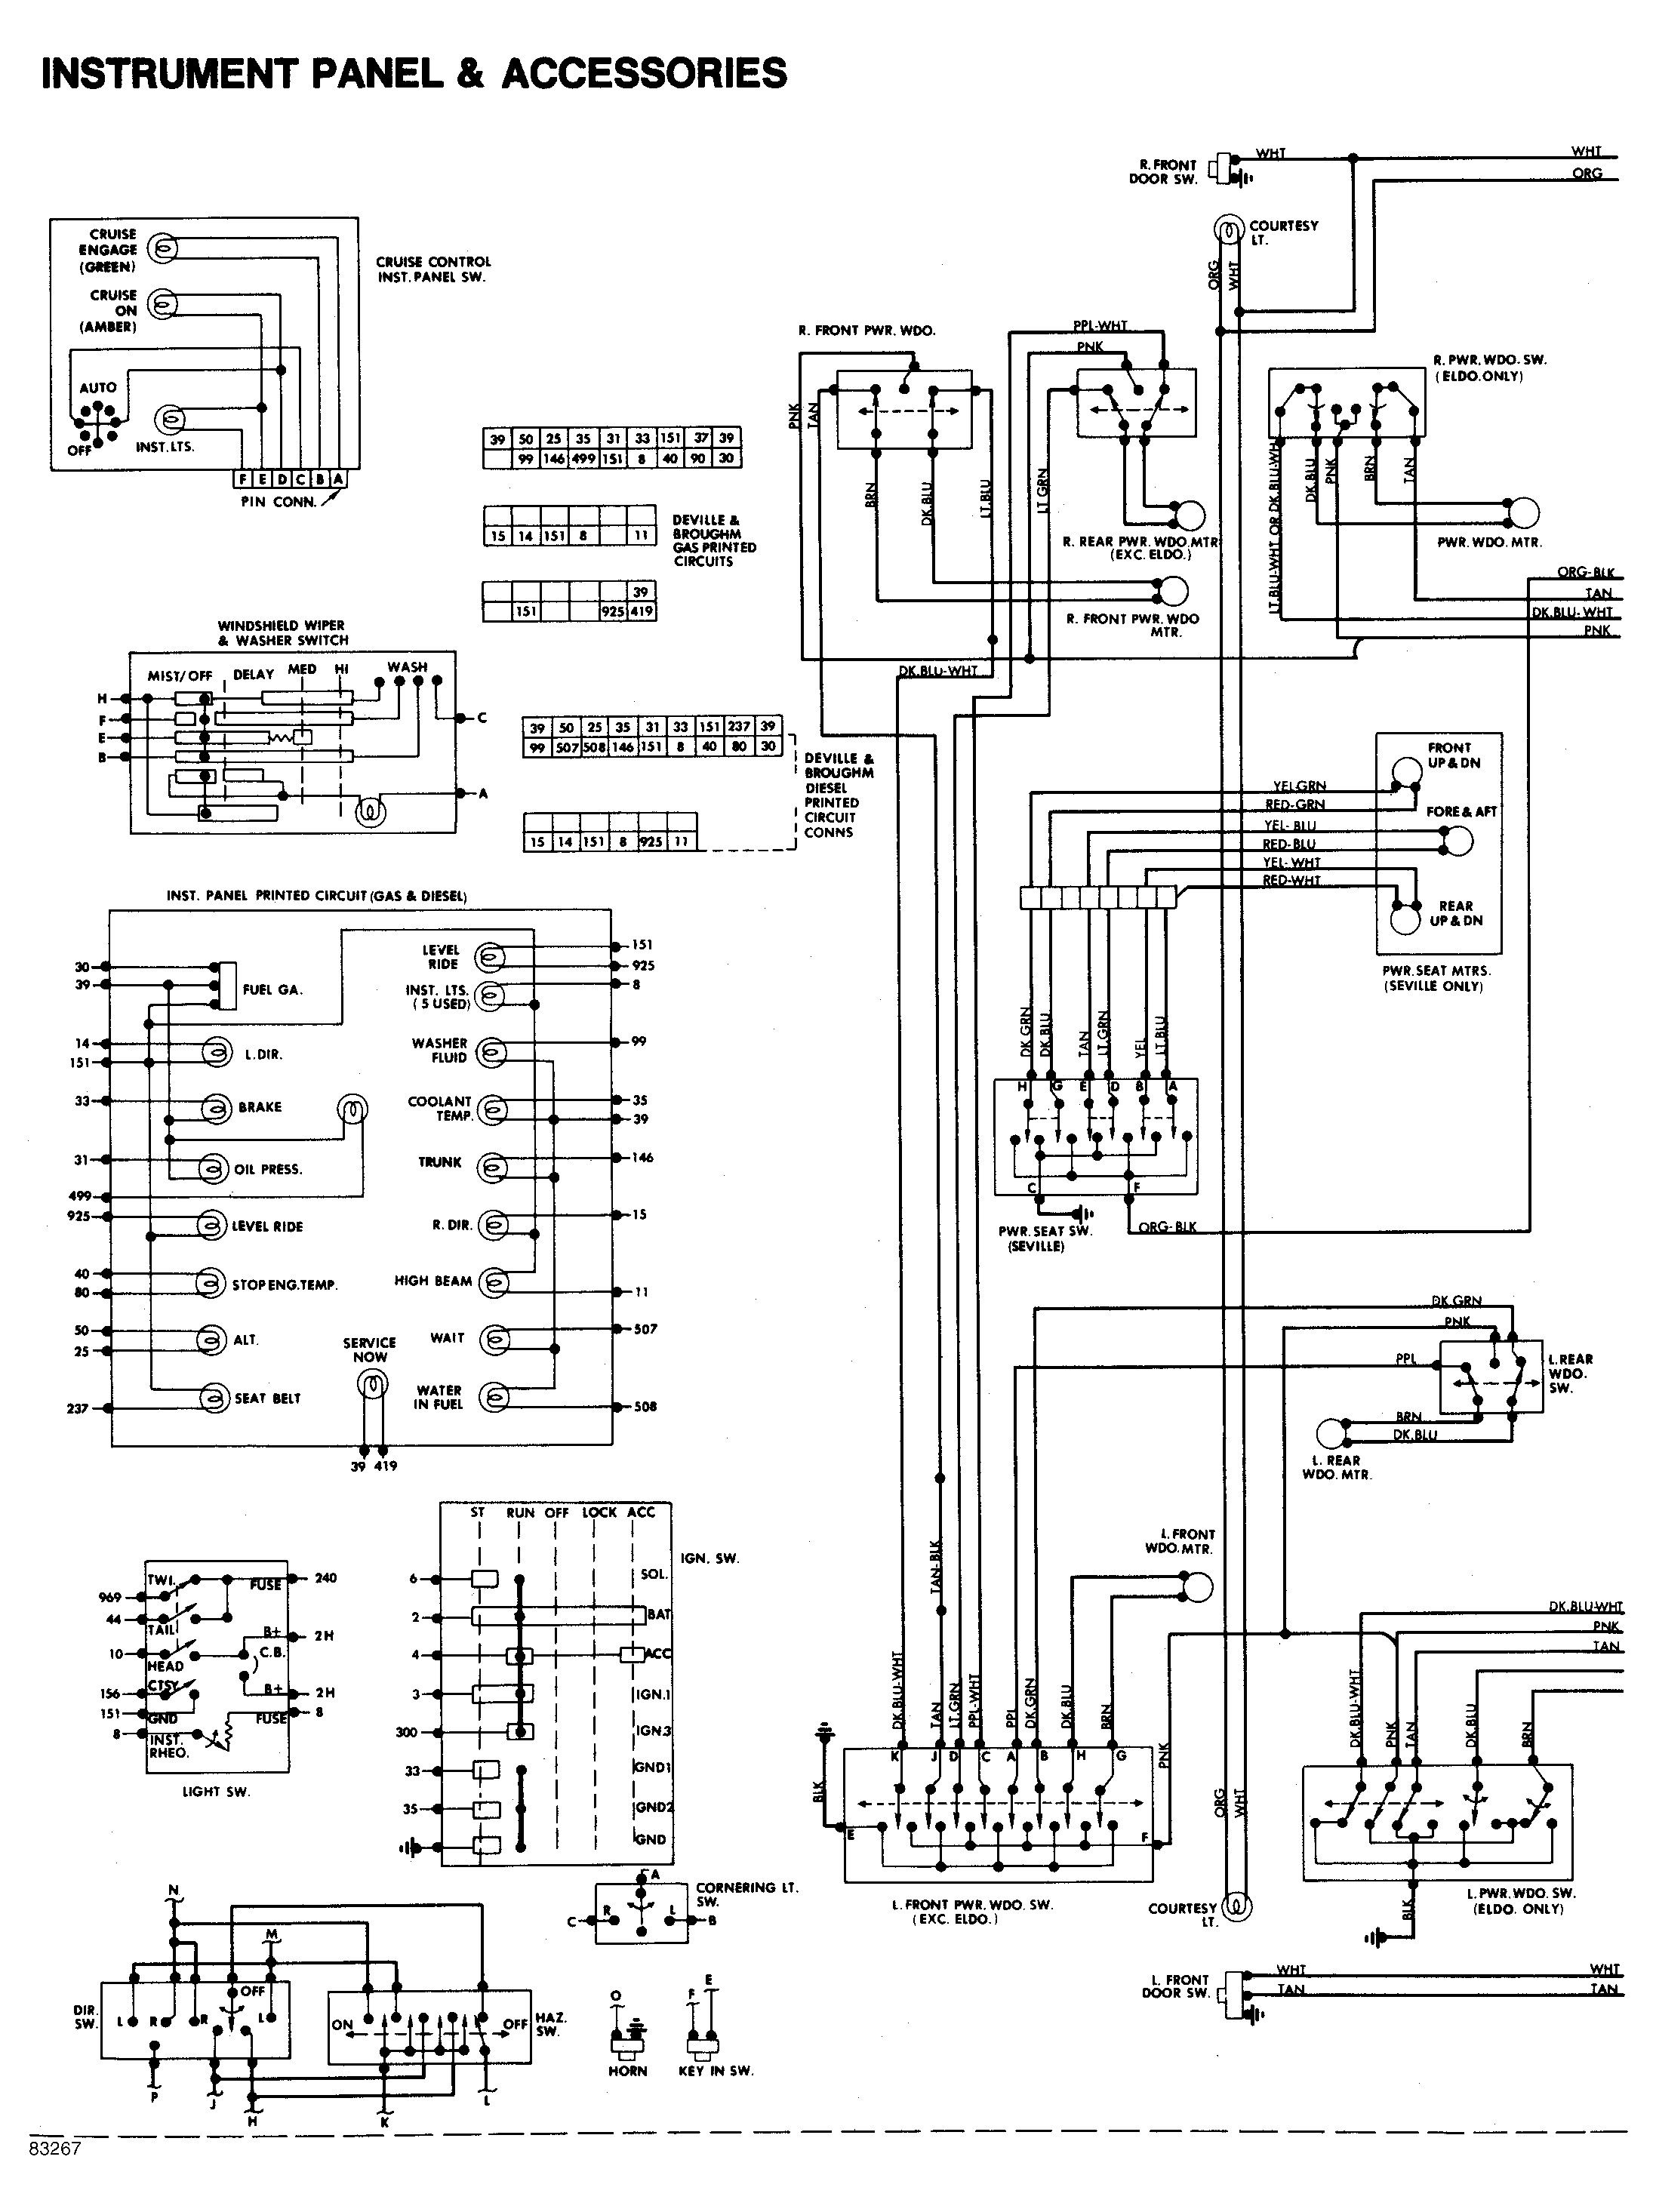 hight resolution of travelall wiring diagram wiring diagram name international travelall wiring diagram